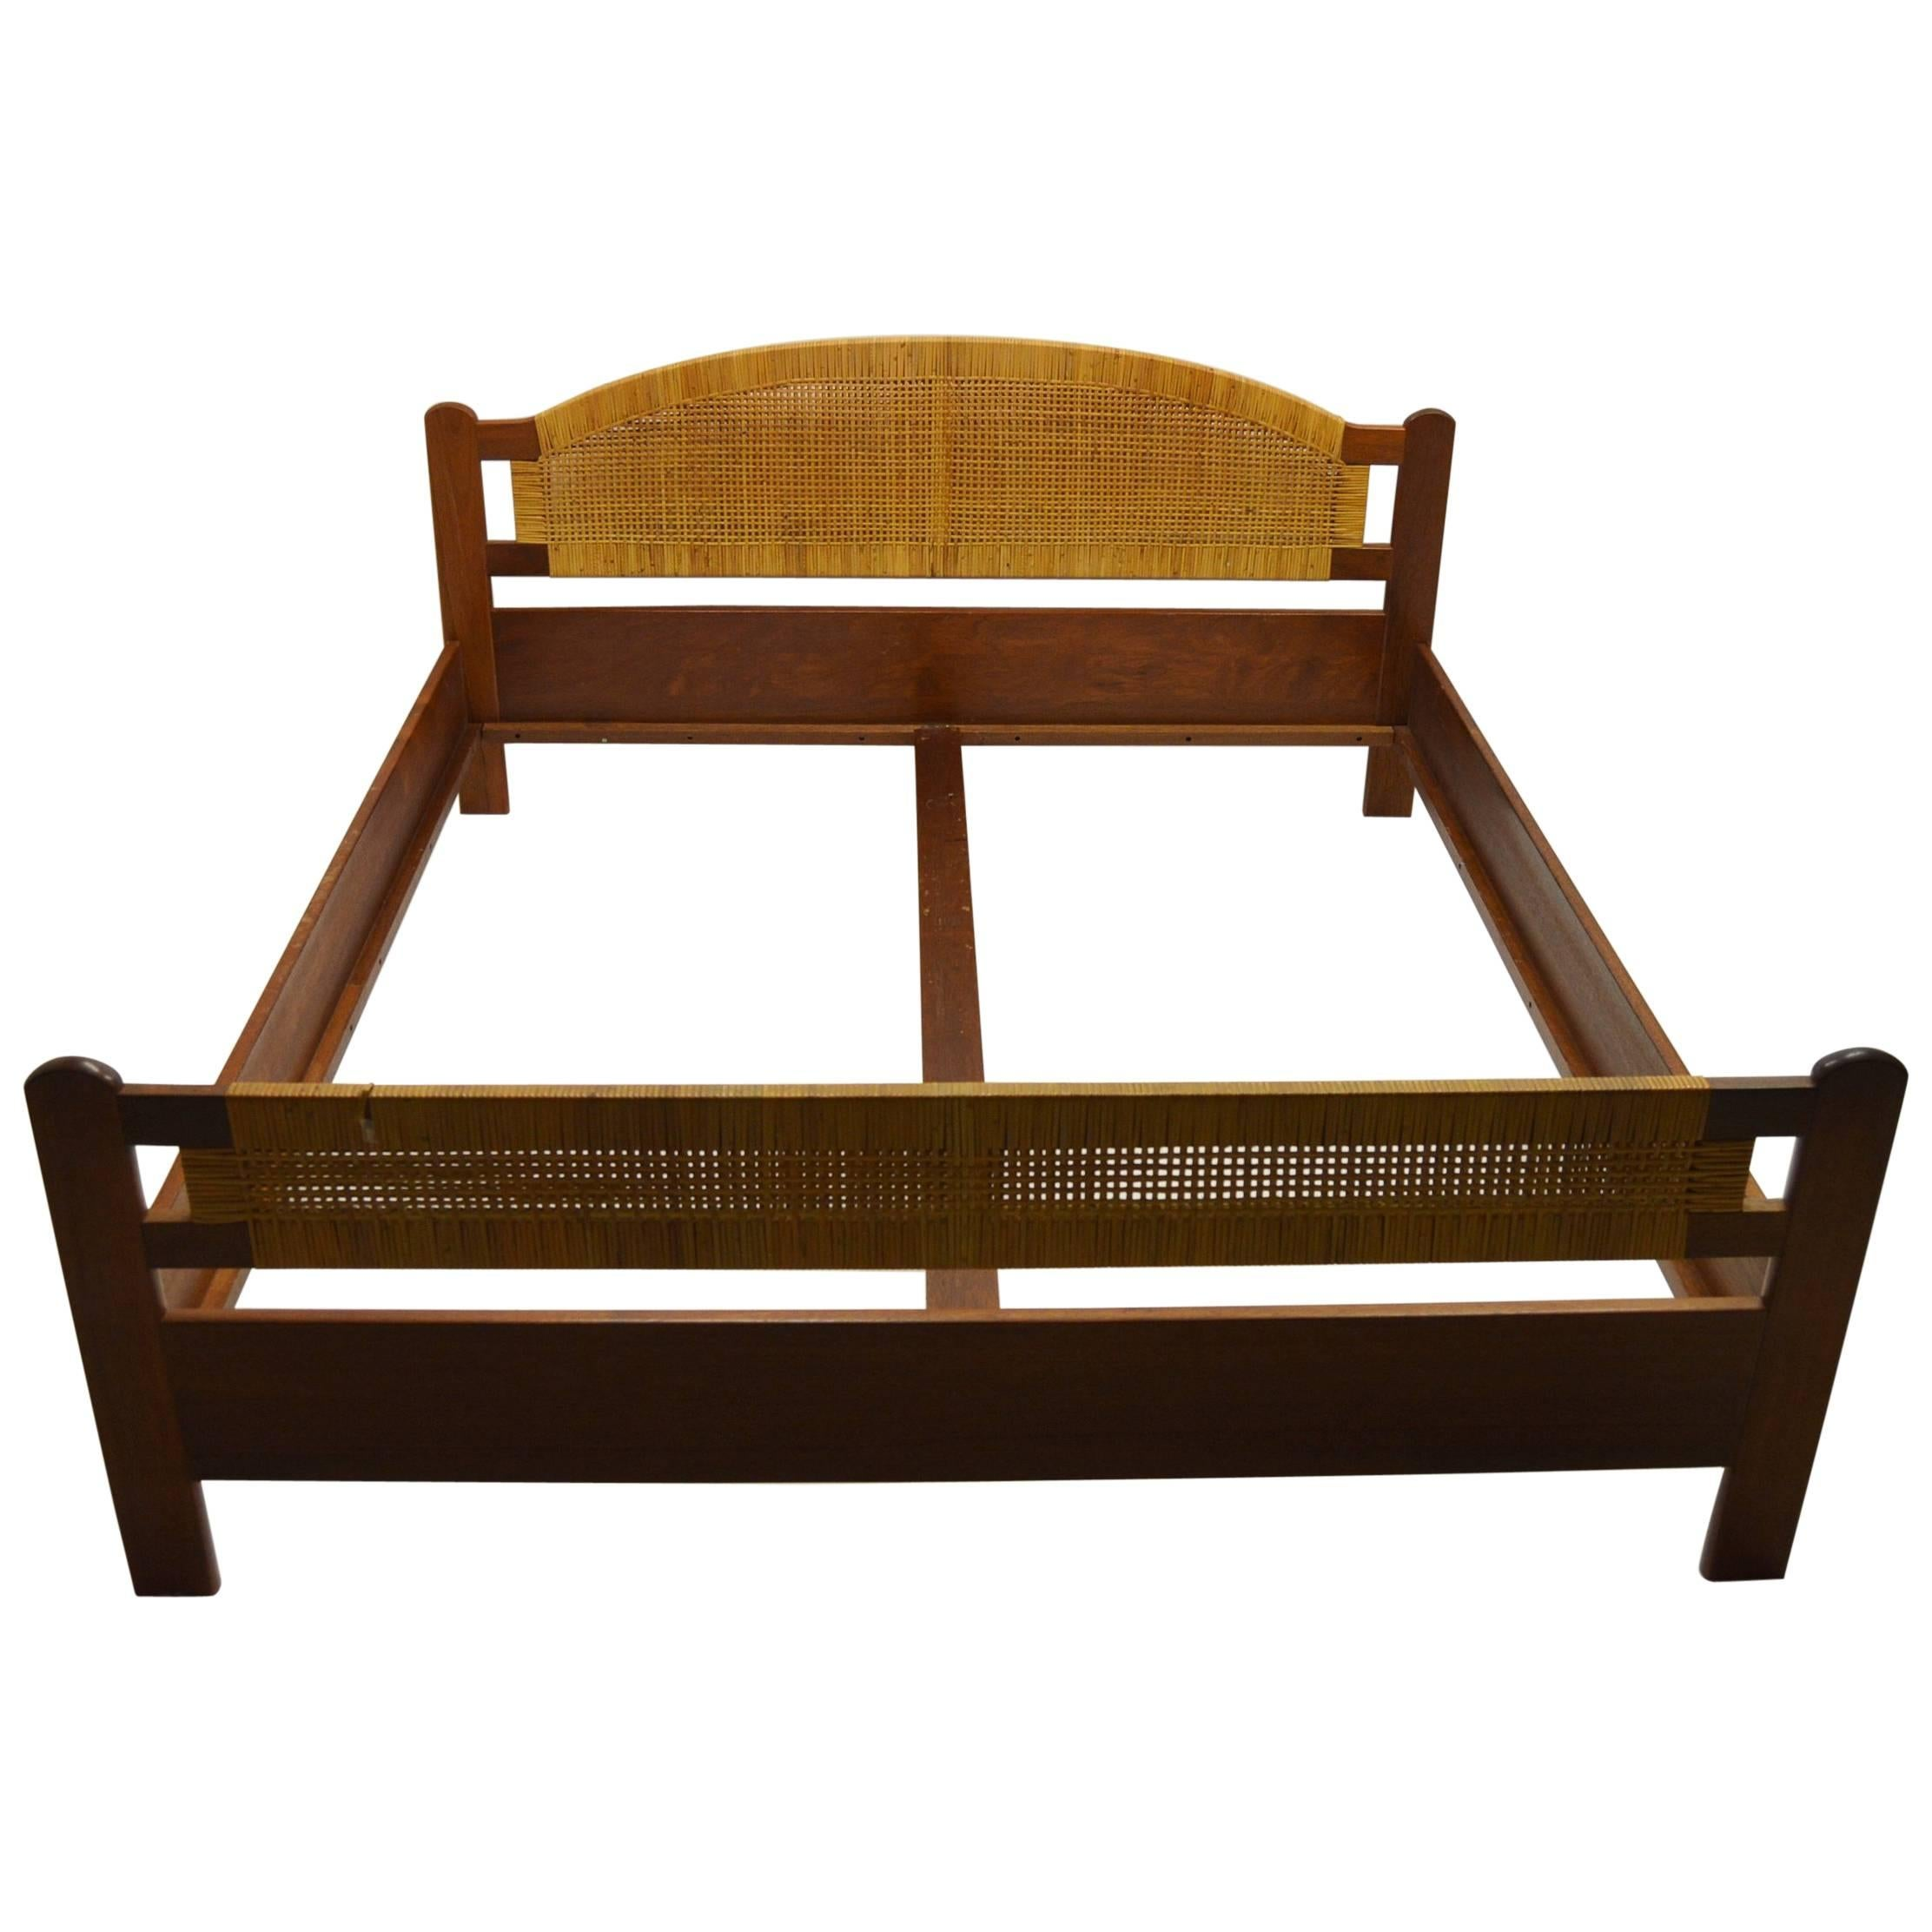 Bed frames for sale neo classic youth 7piece twin bedroom for Used wooden bed frames